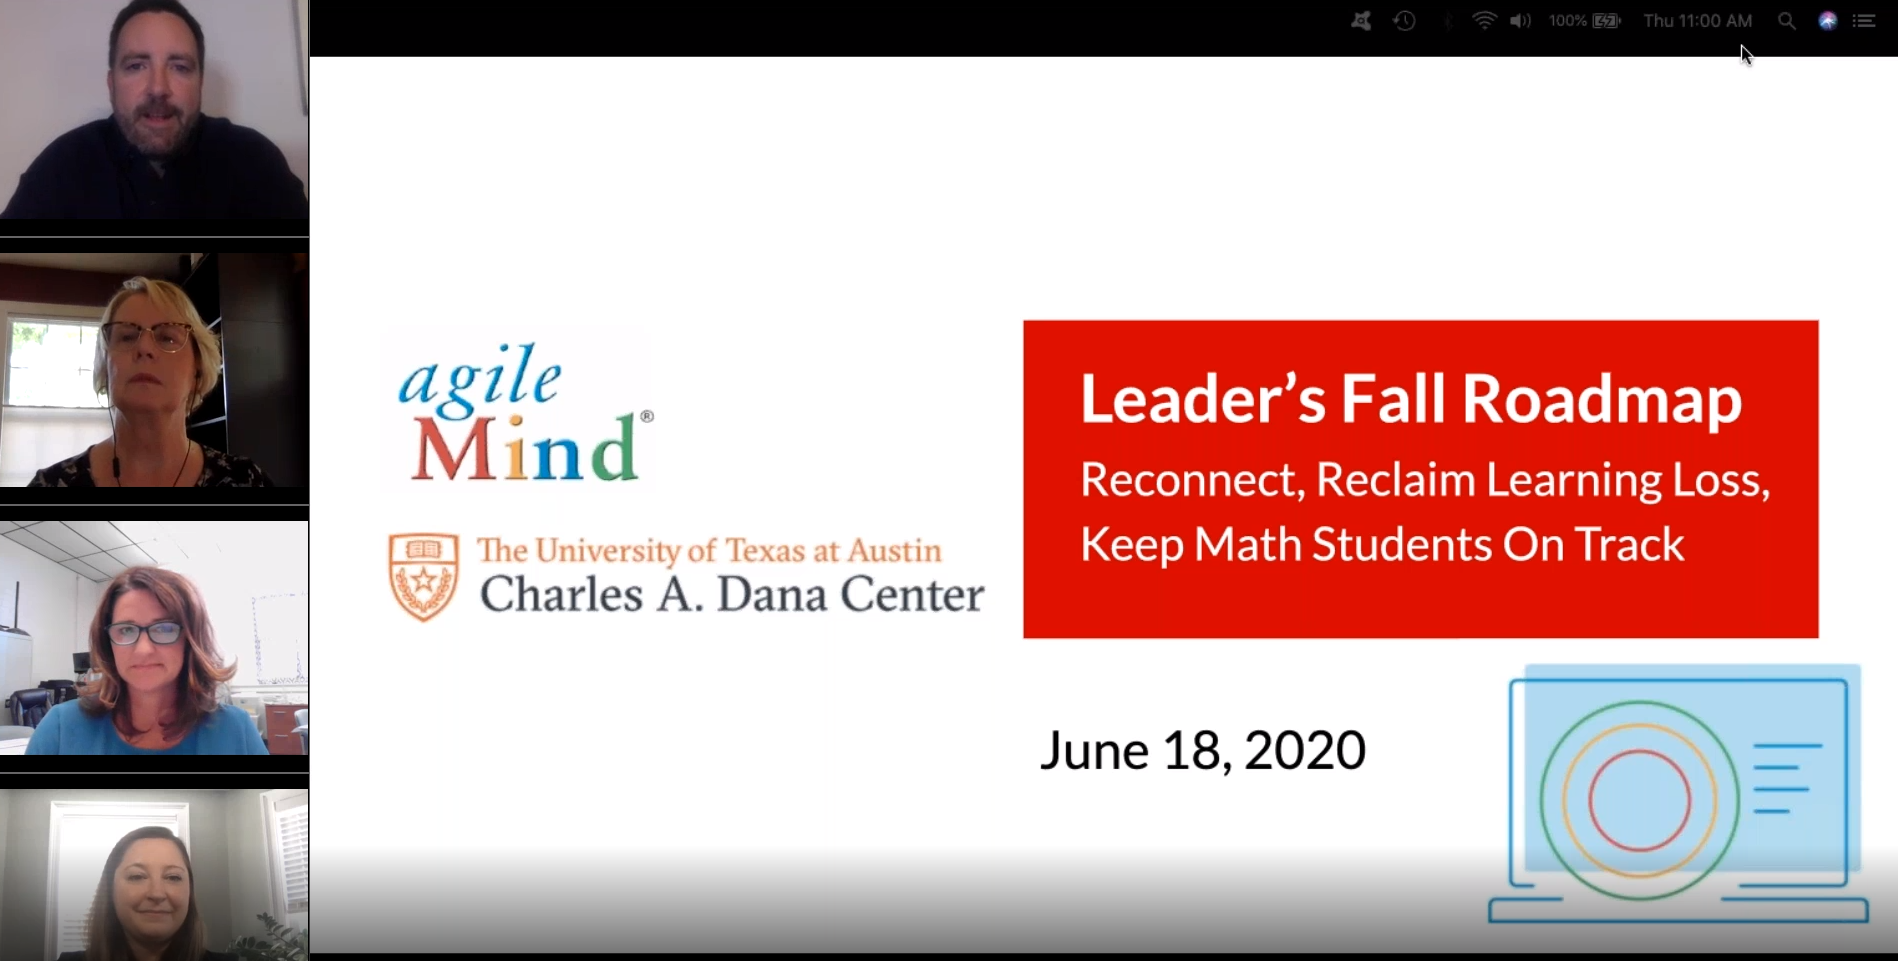 Leader's Fall Roadmap: Reconnect, Reclaim Learning Loss, and Keep Adolescent Math Students on Track